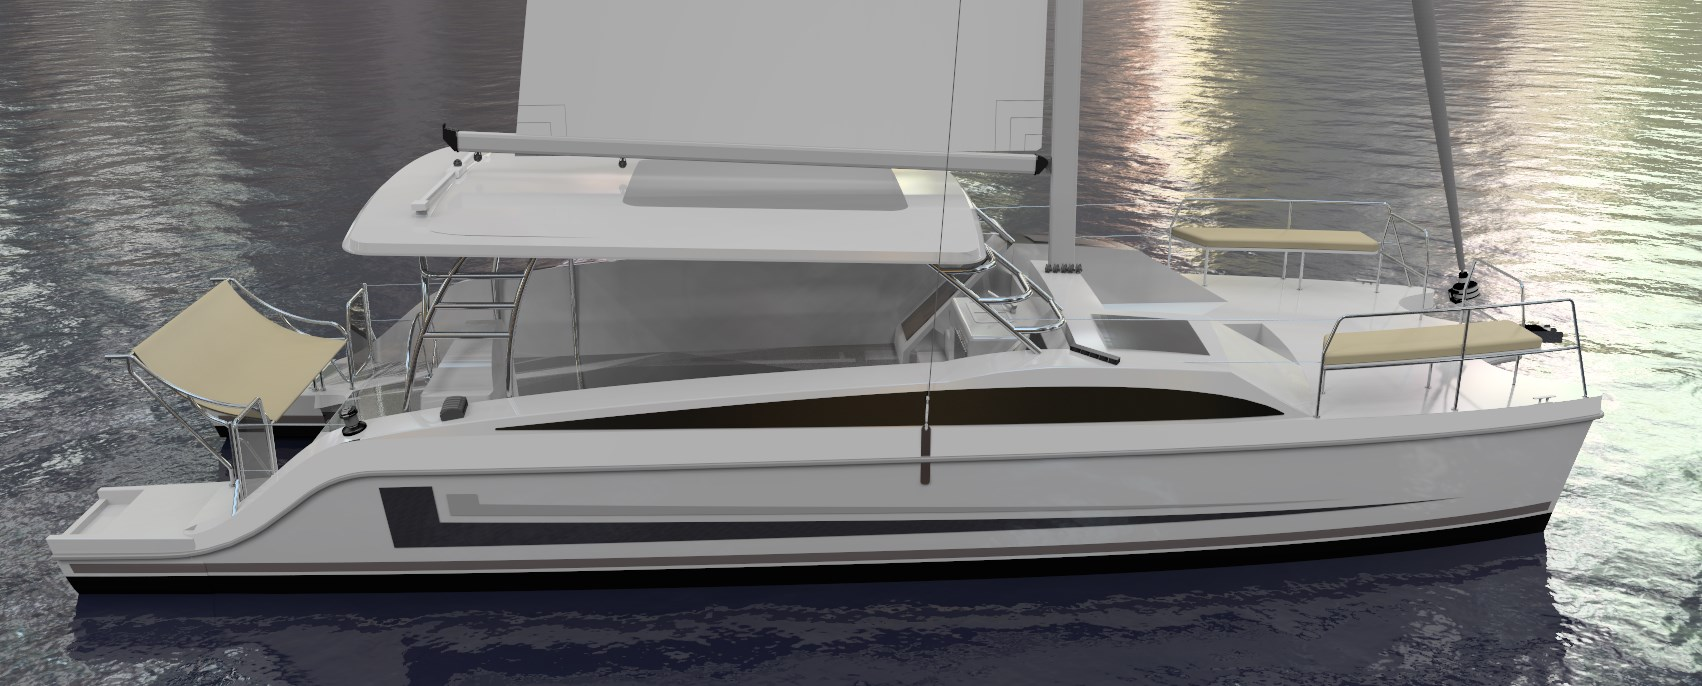 New Sail Catamaran for Sale  Freestyle 37 Boat Highlights